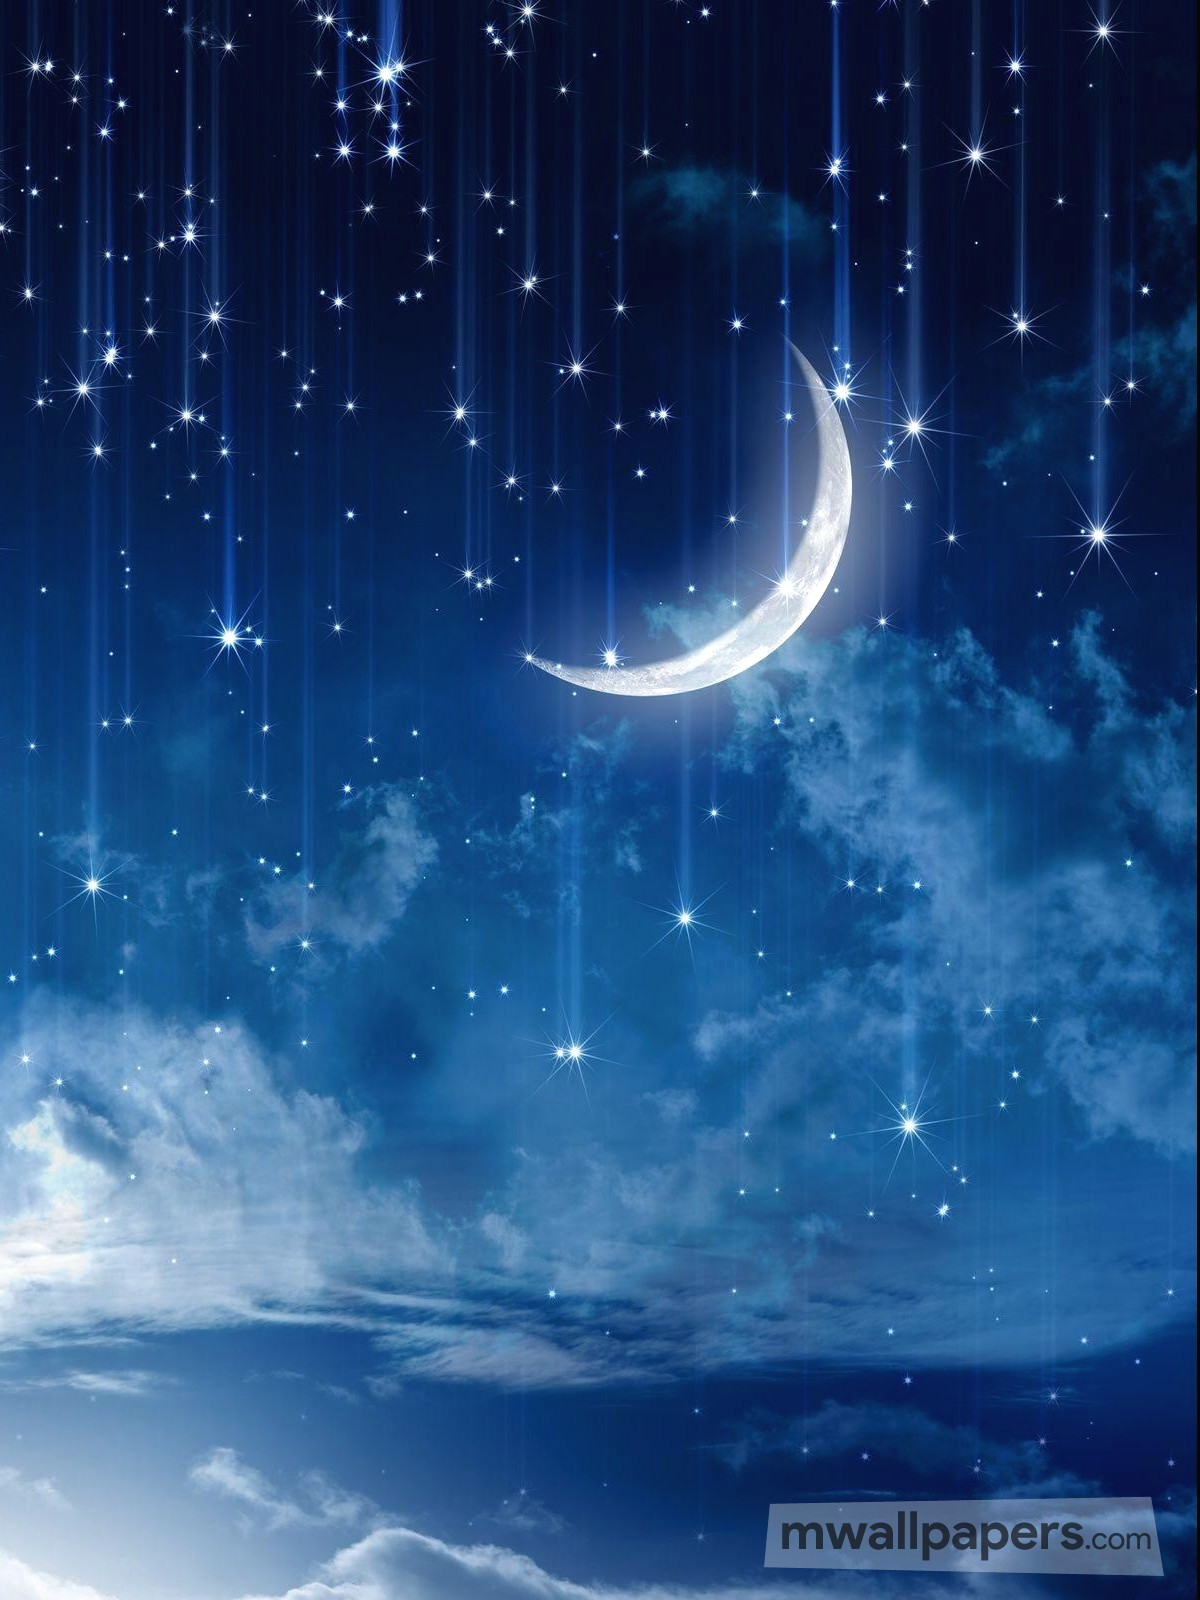 Night Sky Stars Wallpapers - sky,night sky,stars